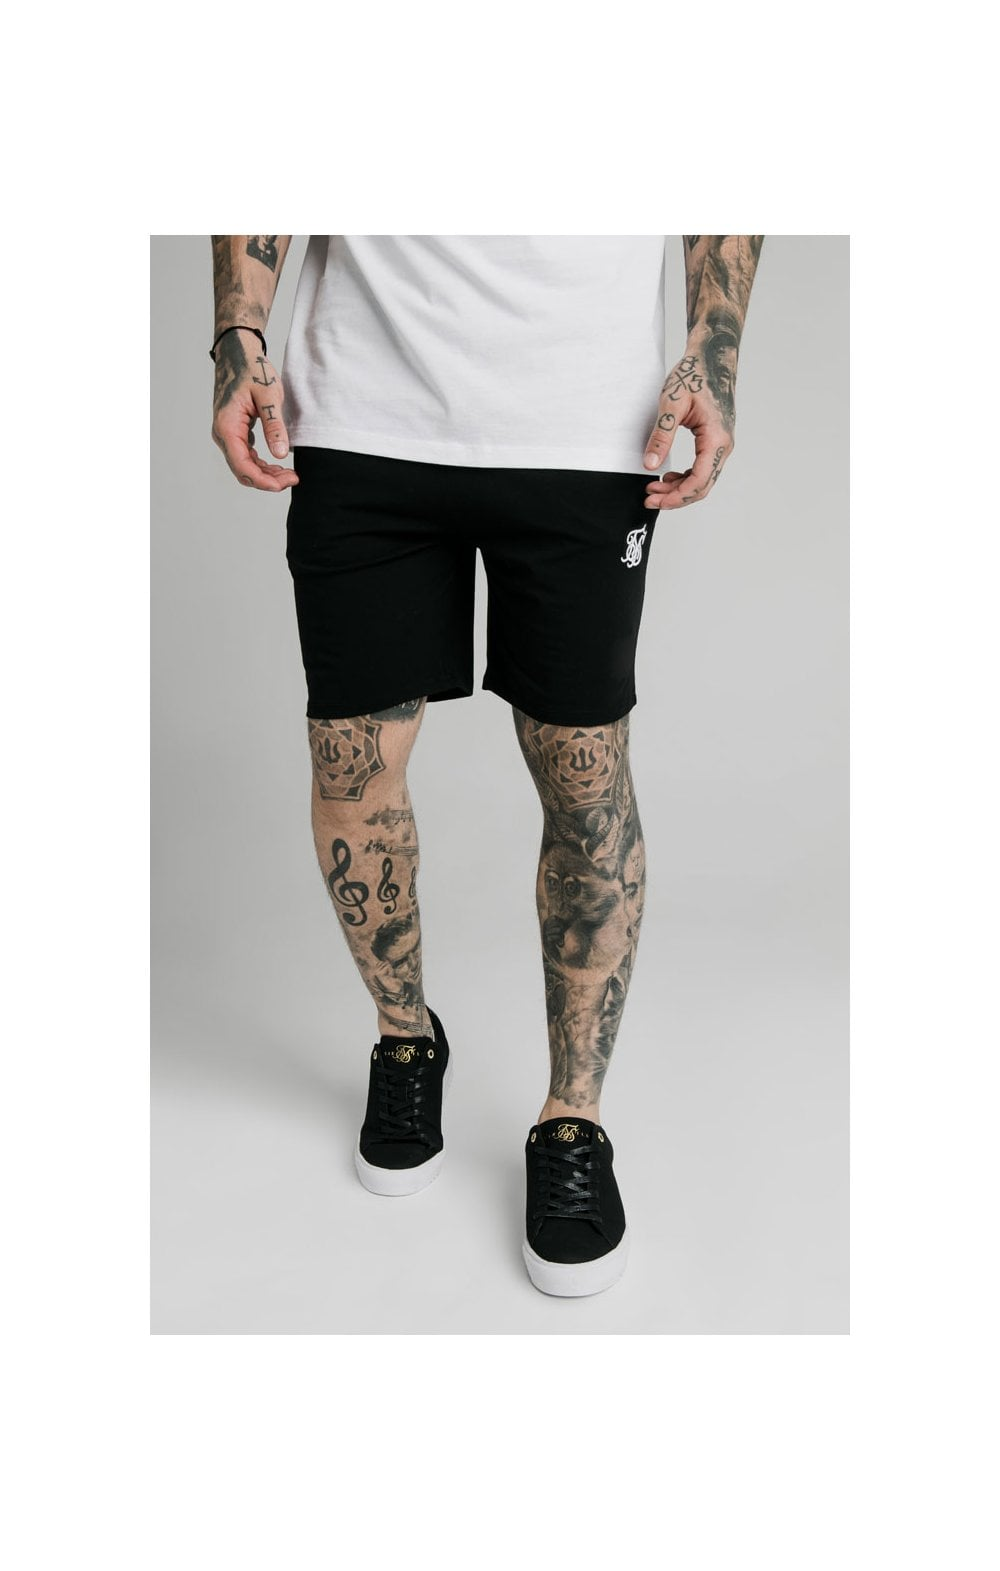 SikSilk Jersey Shorts - Black MEN SIZES BOTTOM: Extra Small 28in